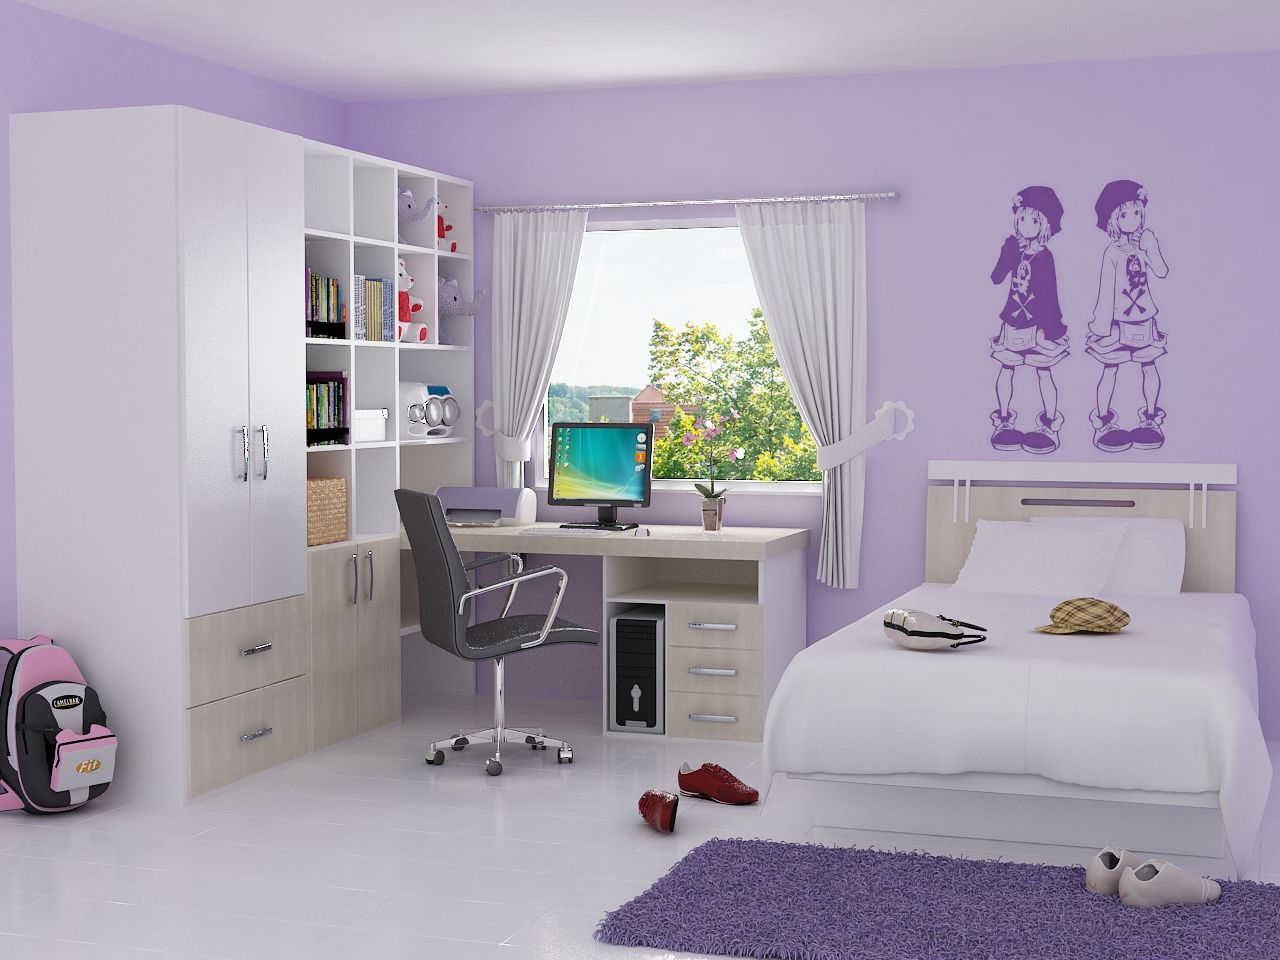 Bedroom ideas for teenage girls purple and pink - Bedroom Cute Teenage Girl Bedroom Ideas And Room Decor Ideas Also Interior Bedroom Ideas For Teenage Girl With Purple Wall Decor And Study Desk With Book